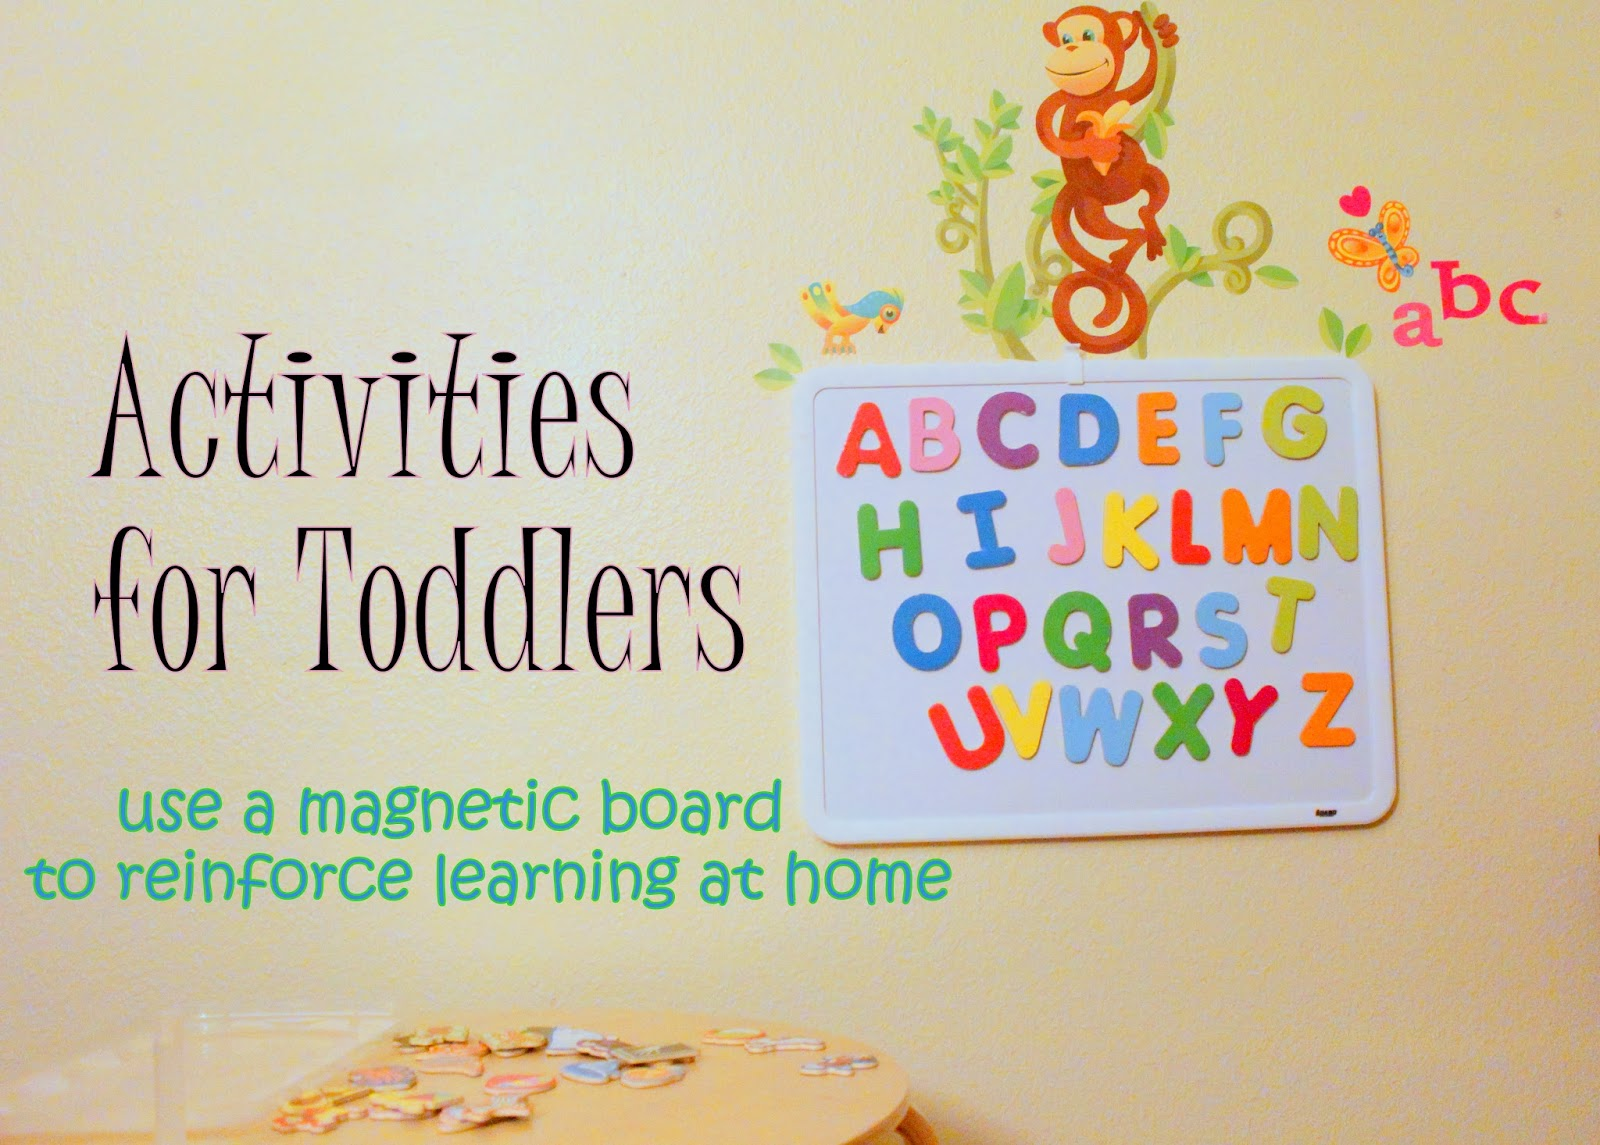 Magnet Board Can Reinforce Learning at Home for Kids